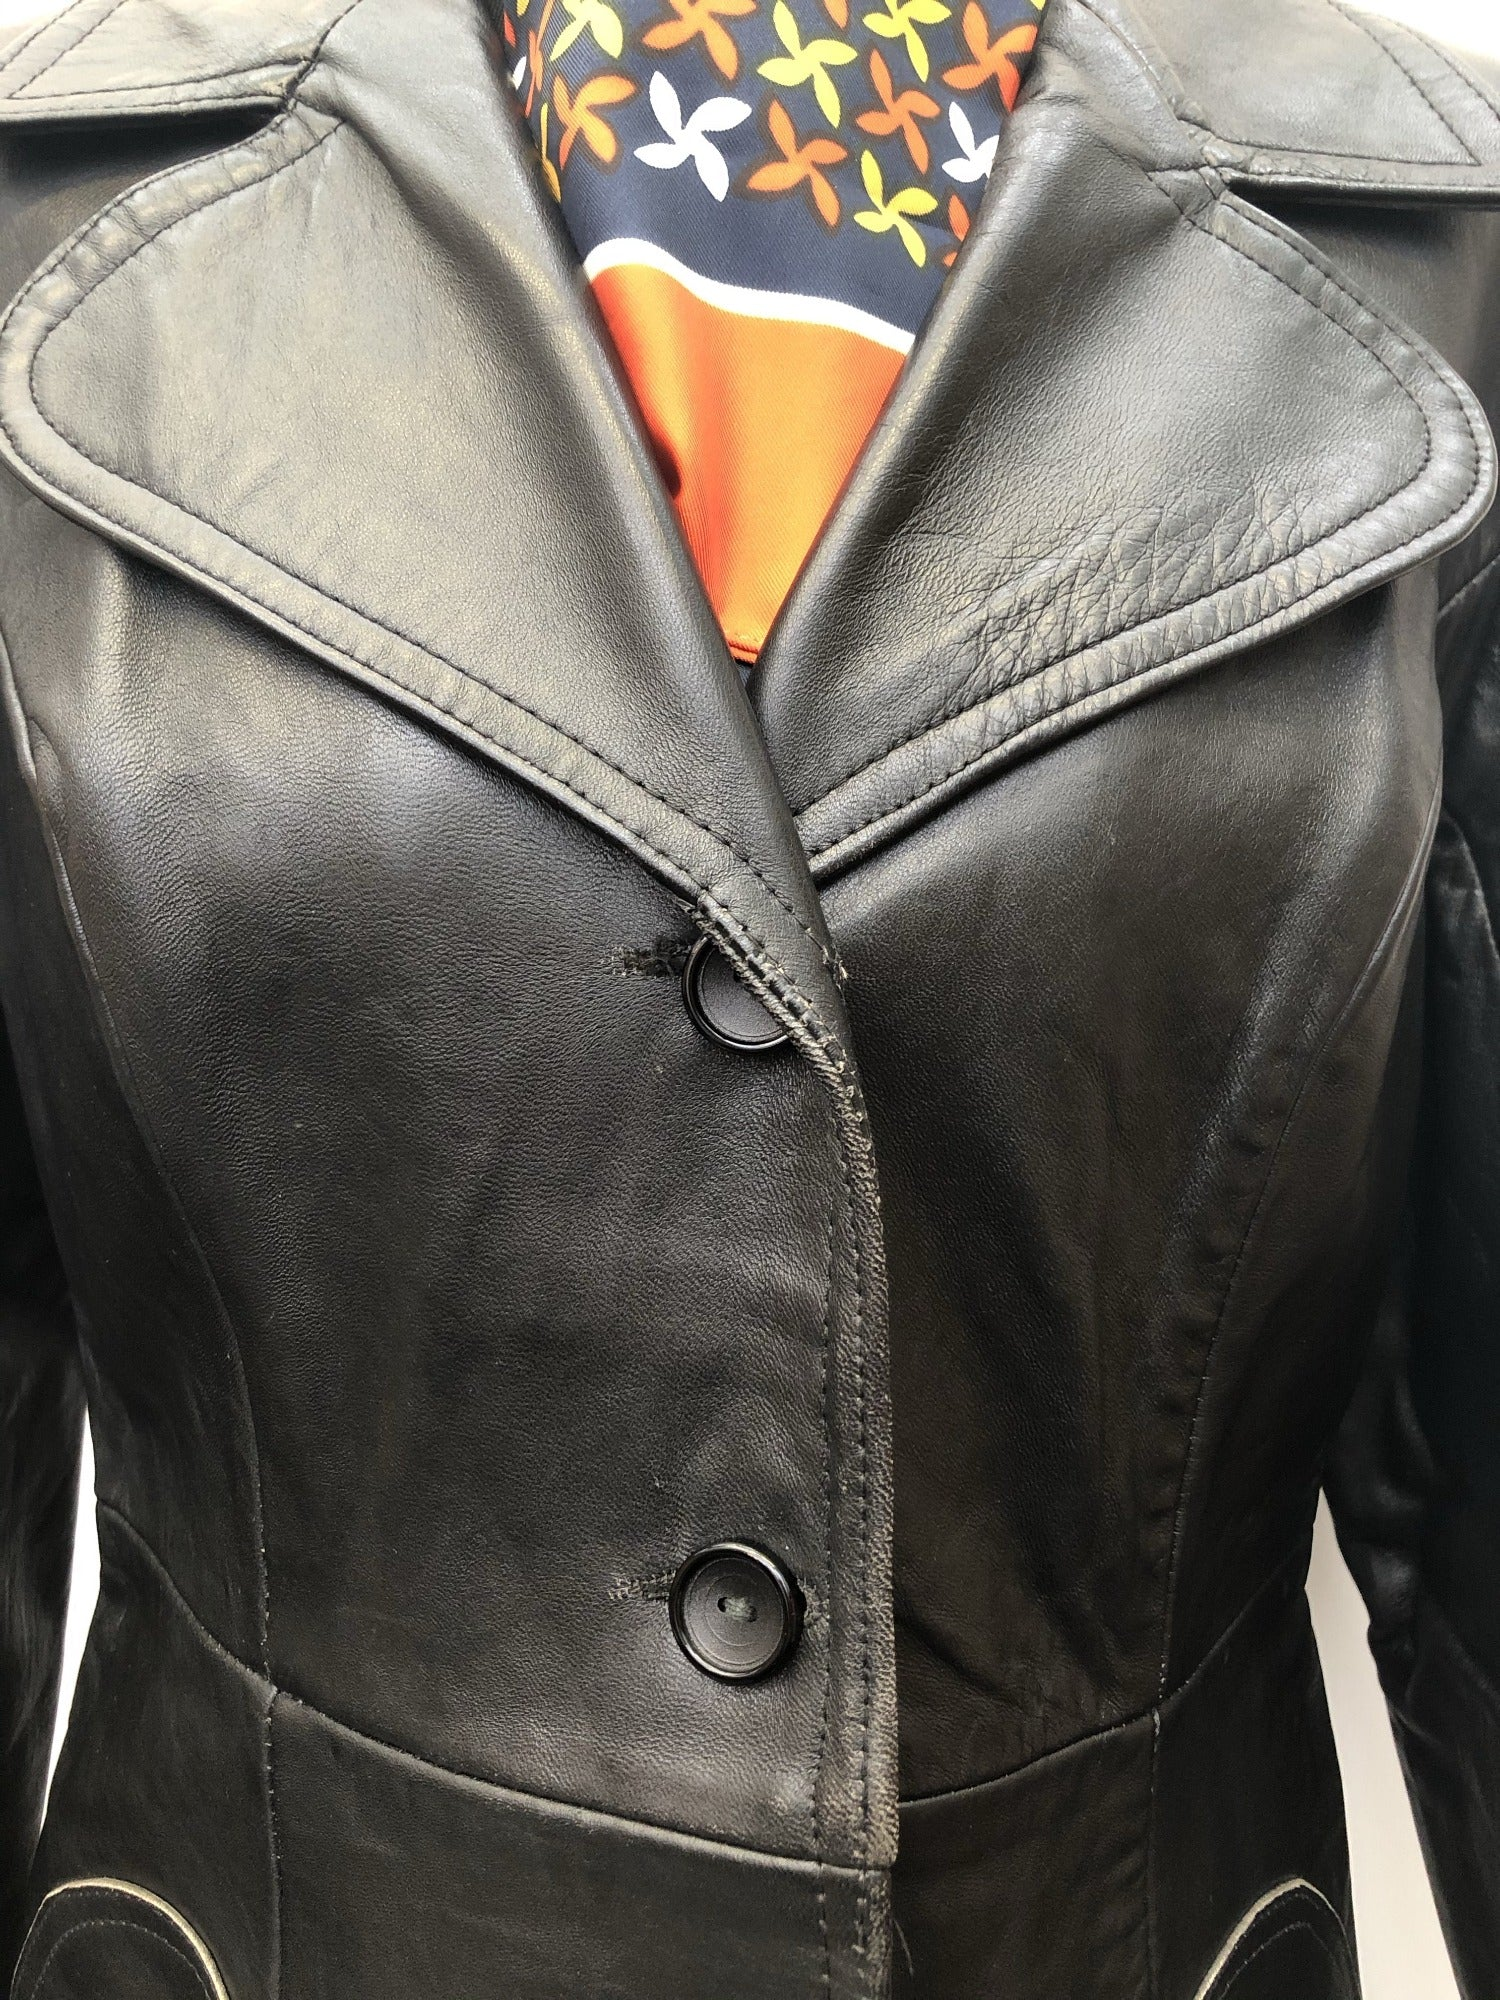 Womens Vintage 1970s Black Leather Jacket Suede Centre Swear & Wells Size 12 long length 70s circular pockets collared design button front - Urban Village Vintage